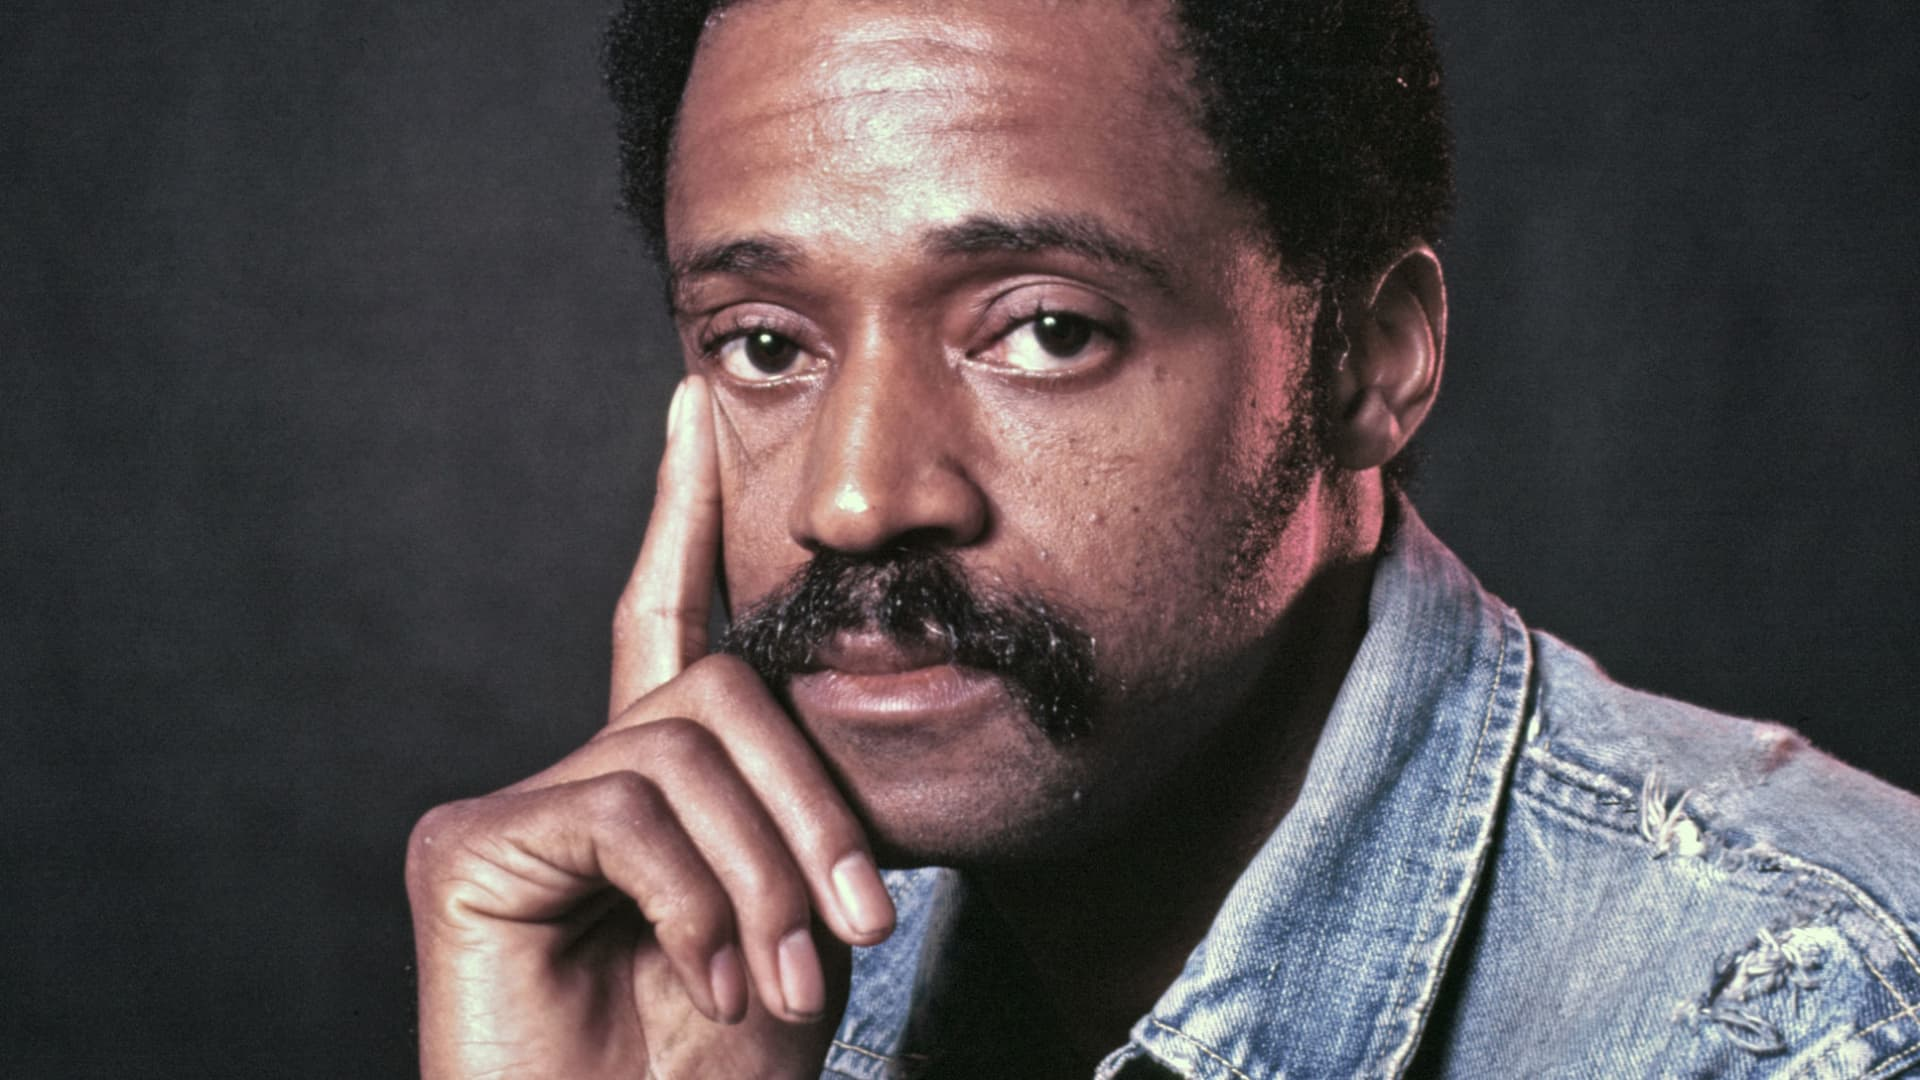 Actor, director, screenwriter, playwright, novelist and composer Melvin Van Peebles photographed in 1972.